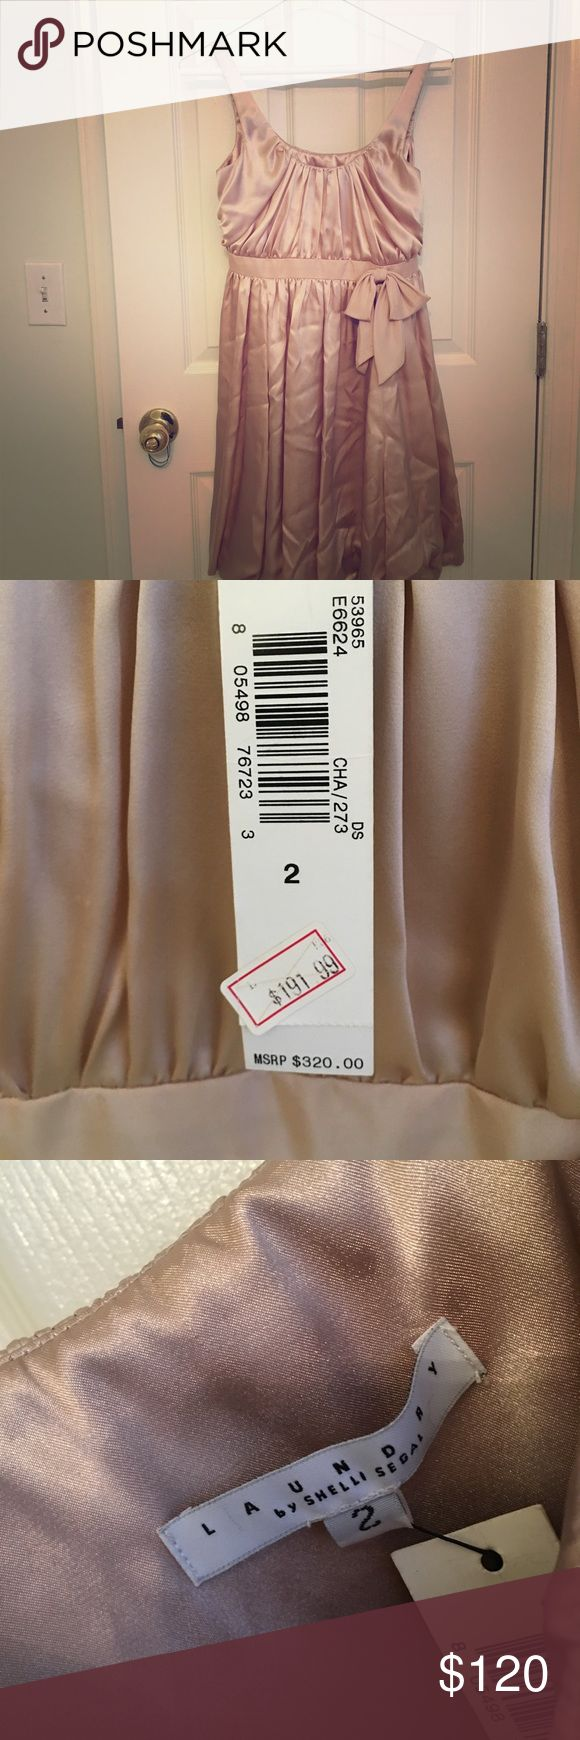 Gold Laundry dress NWOT Gorgeous gold silk dress. NWOT. Was folded in closet so would need to be dry cleaned but otherwise in perfect condition. Super flattering cut - lightly skims the body. Laundry by Shelli Segal Dresses